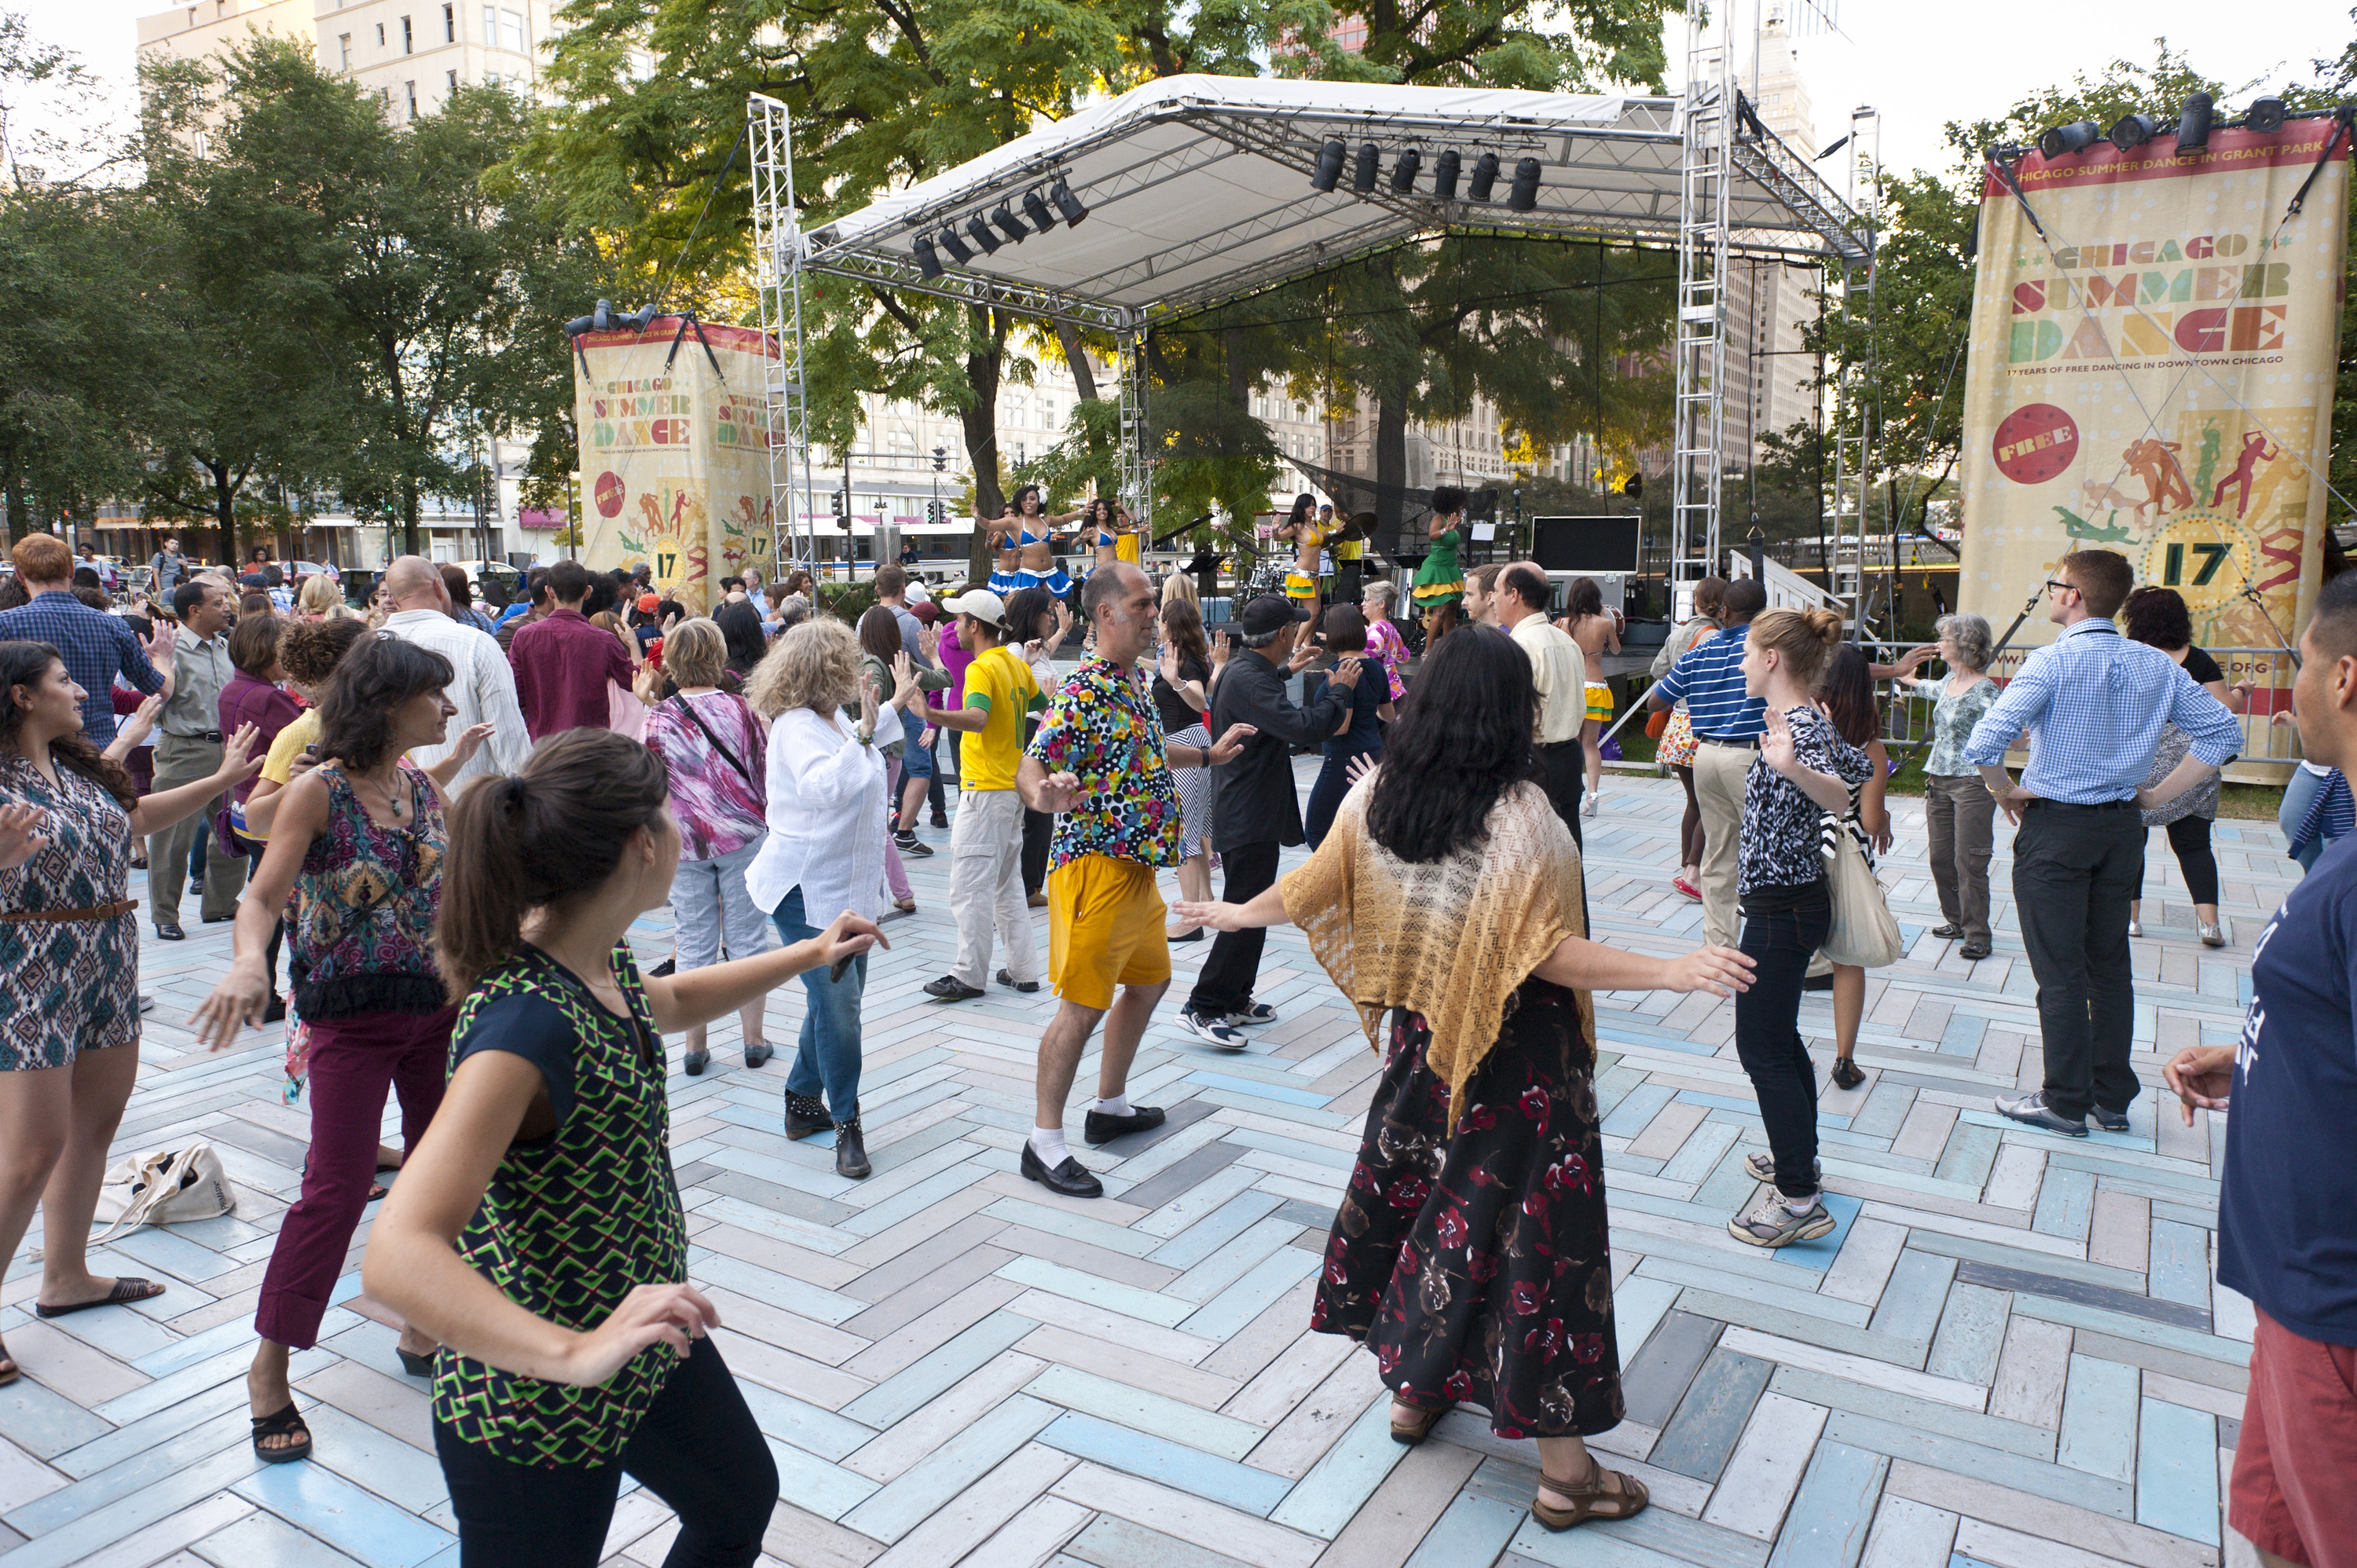 Check out the complete Chicago SummerDance 2019 schedule